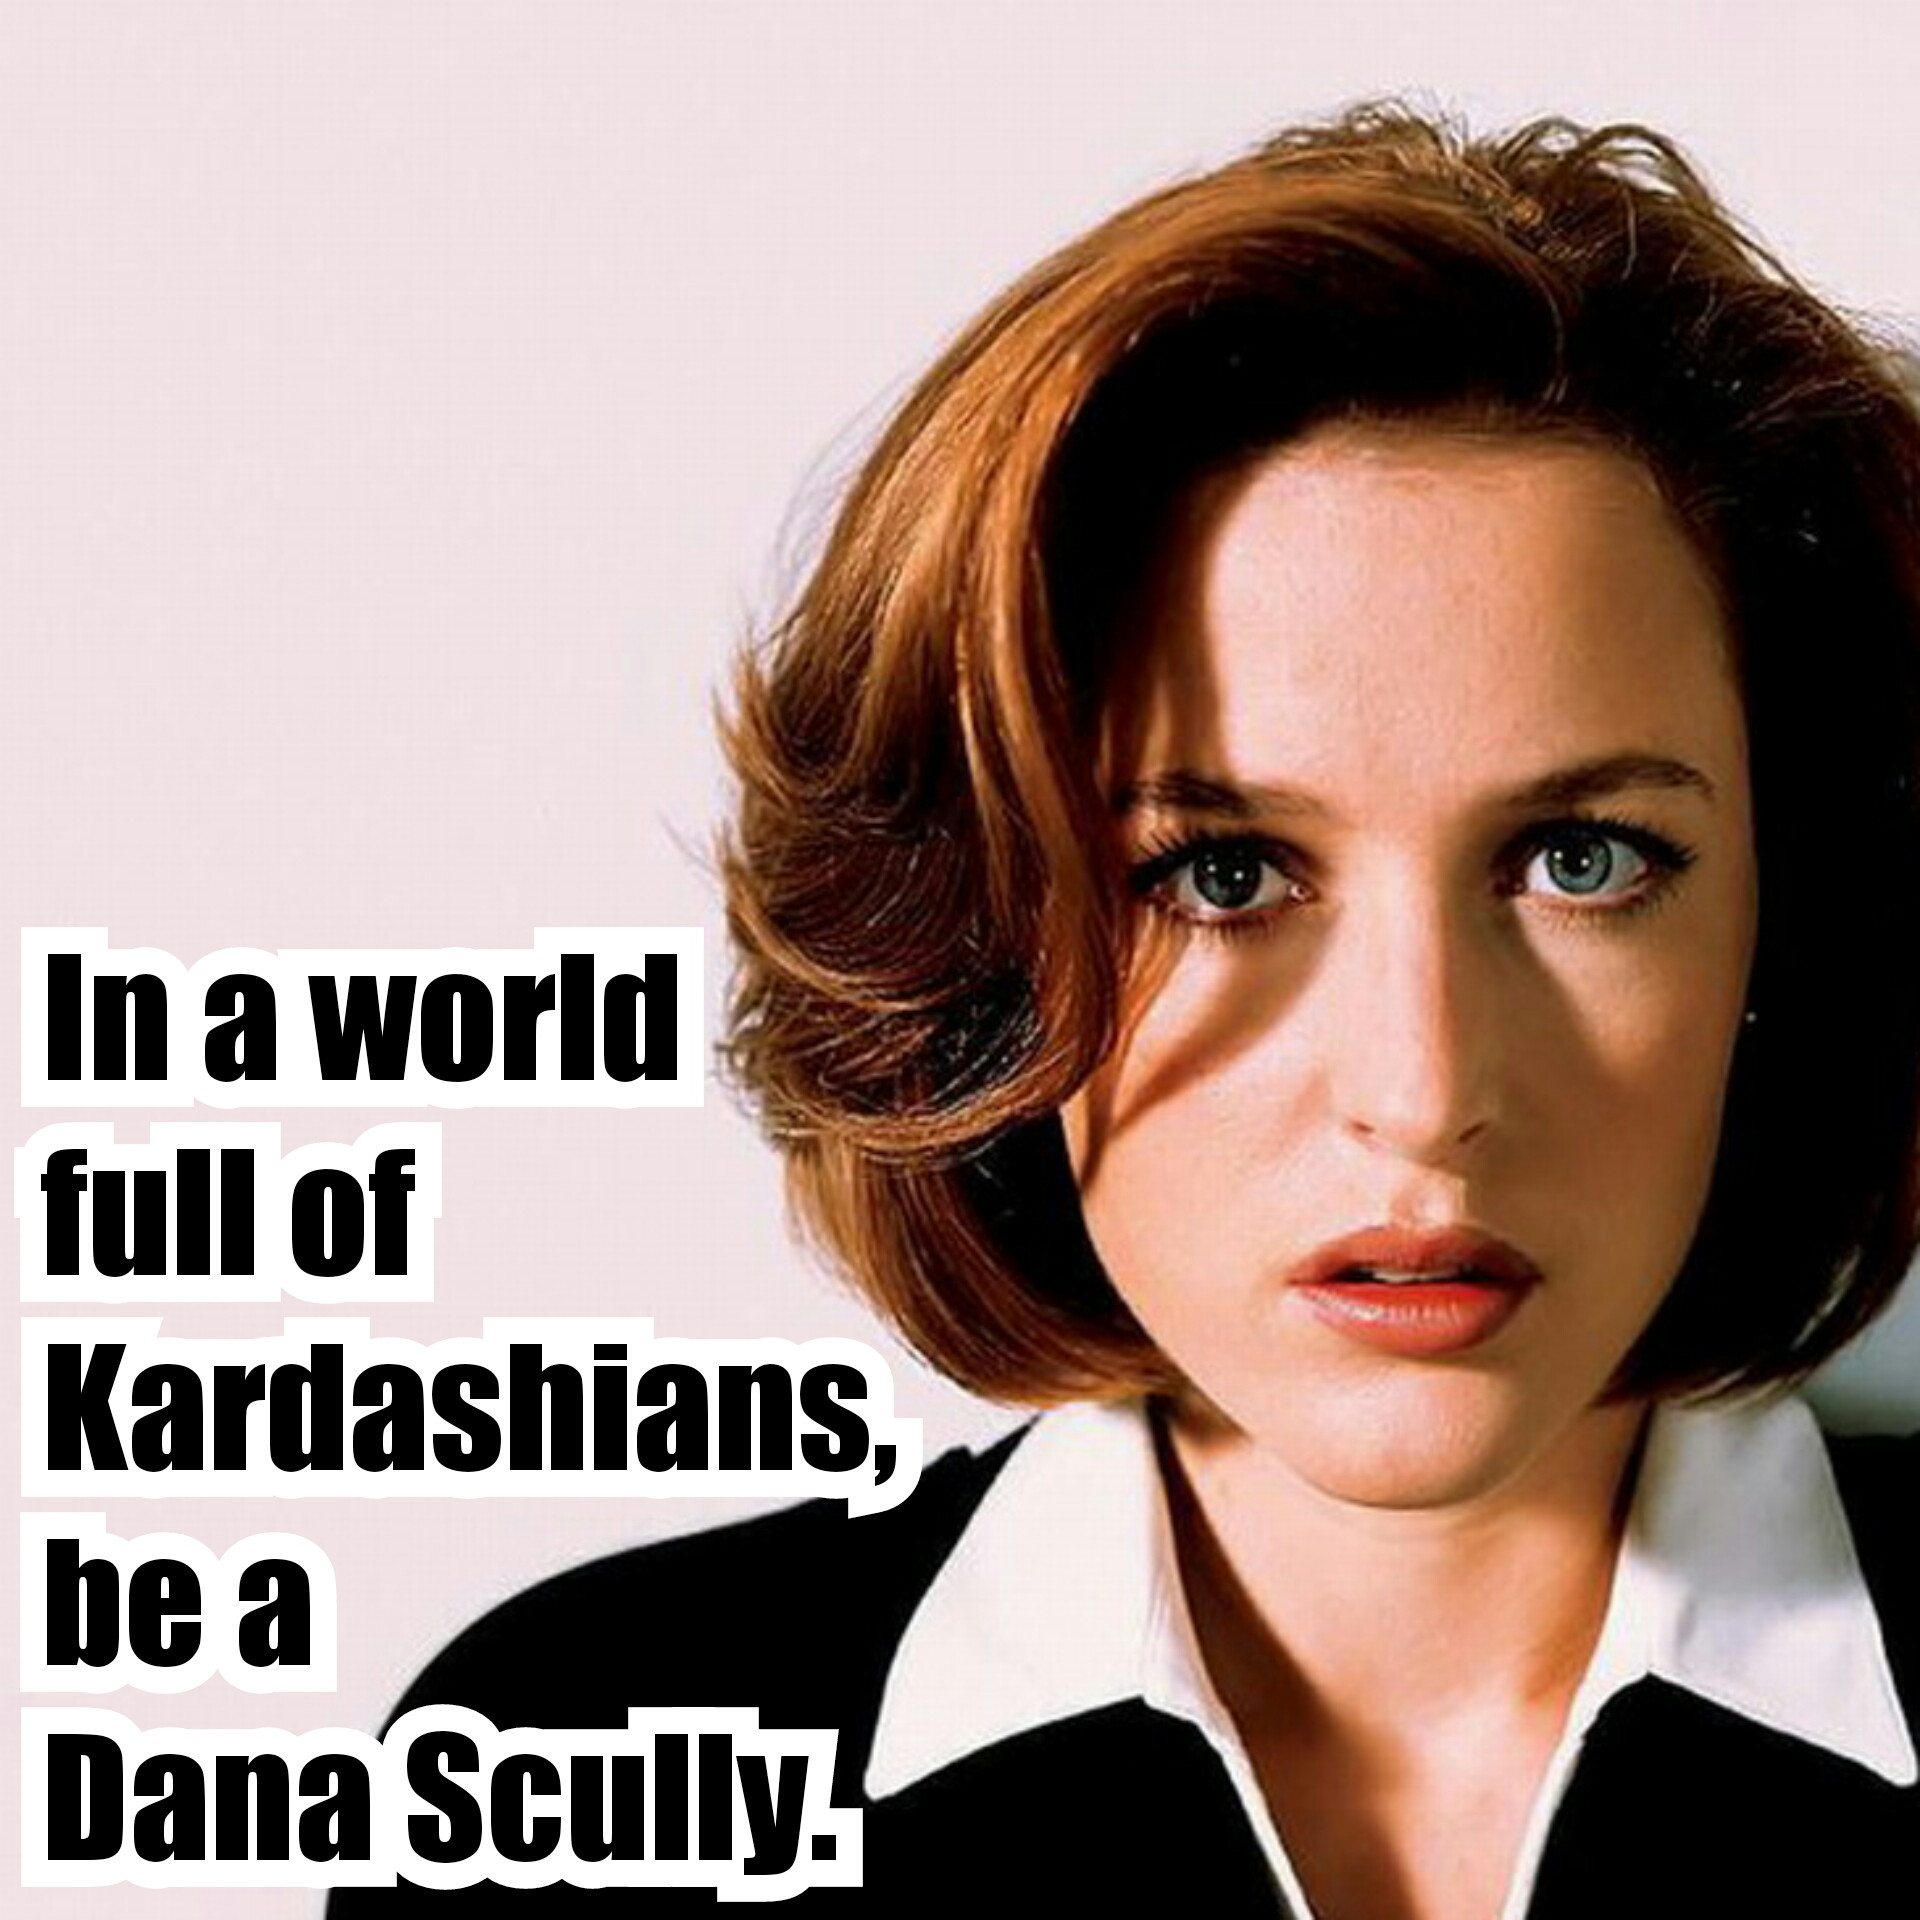 7e8 be a dana scully in a world of kardashians know your meme